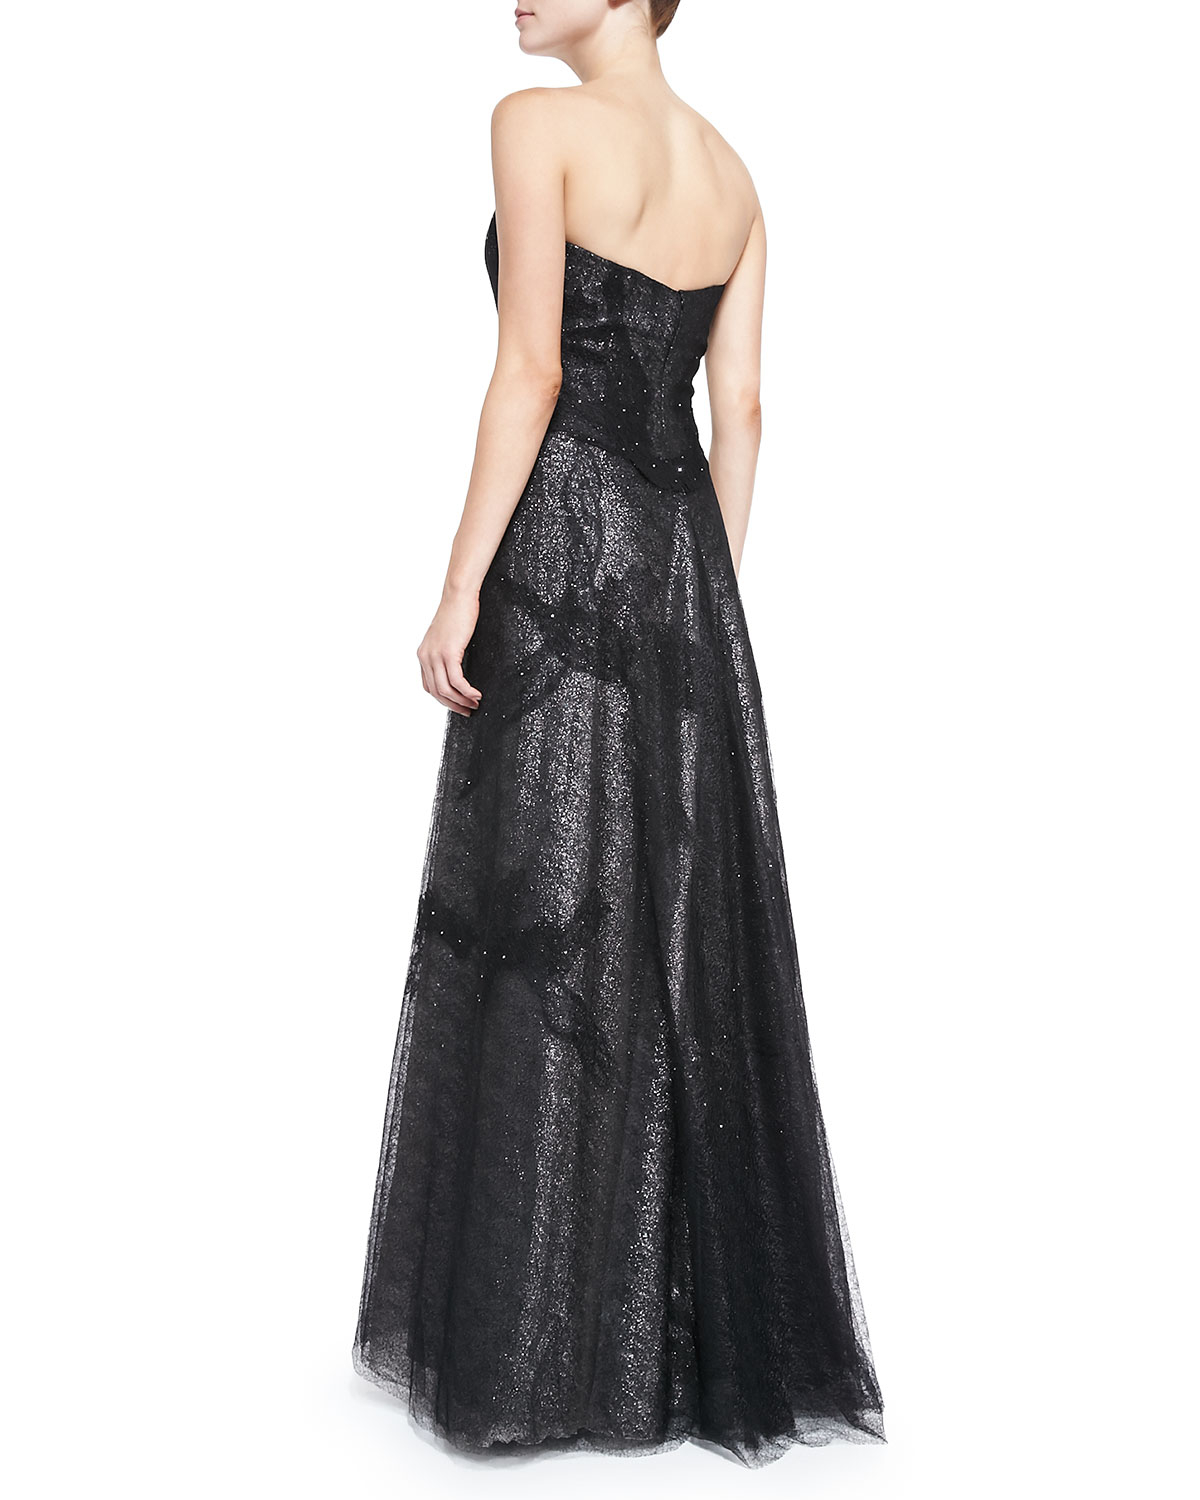 Lyst - Rene Ruiz Strapless Gown With Lace Overlay Skirt in ...